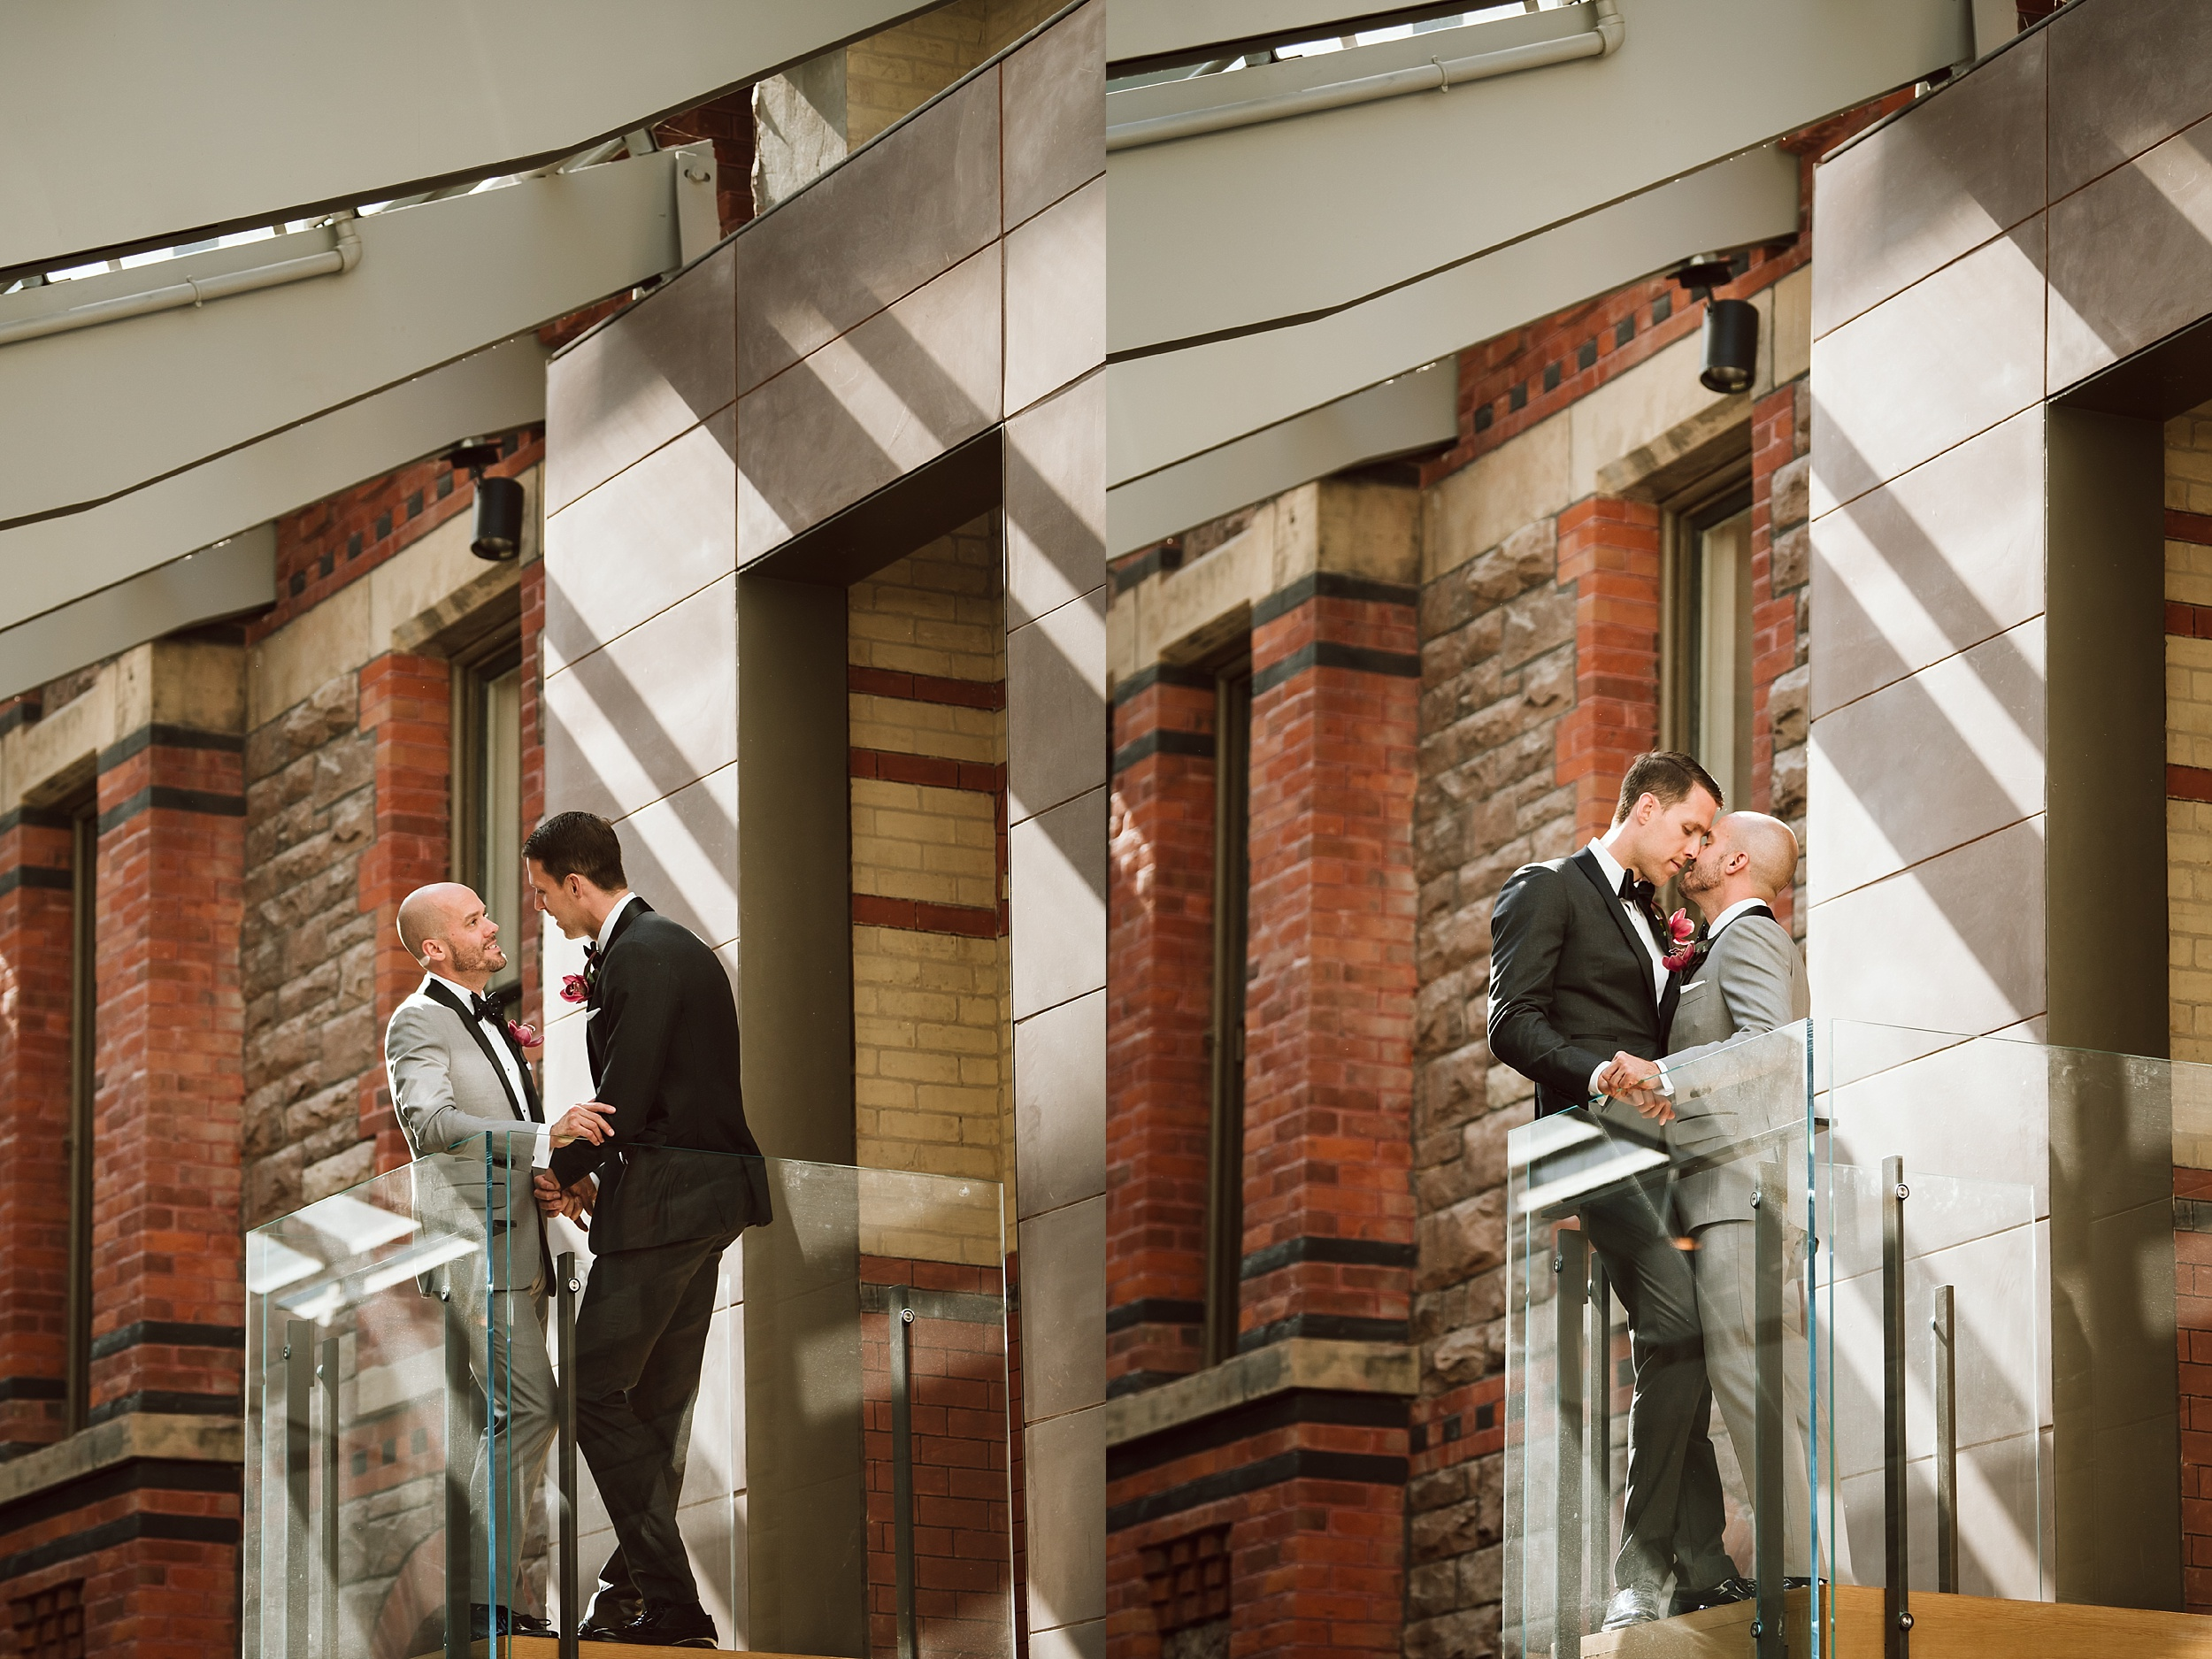 Royal_Conservatory_Music_Toronto_Wedding_Photographer_0020.jpg